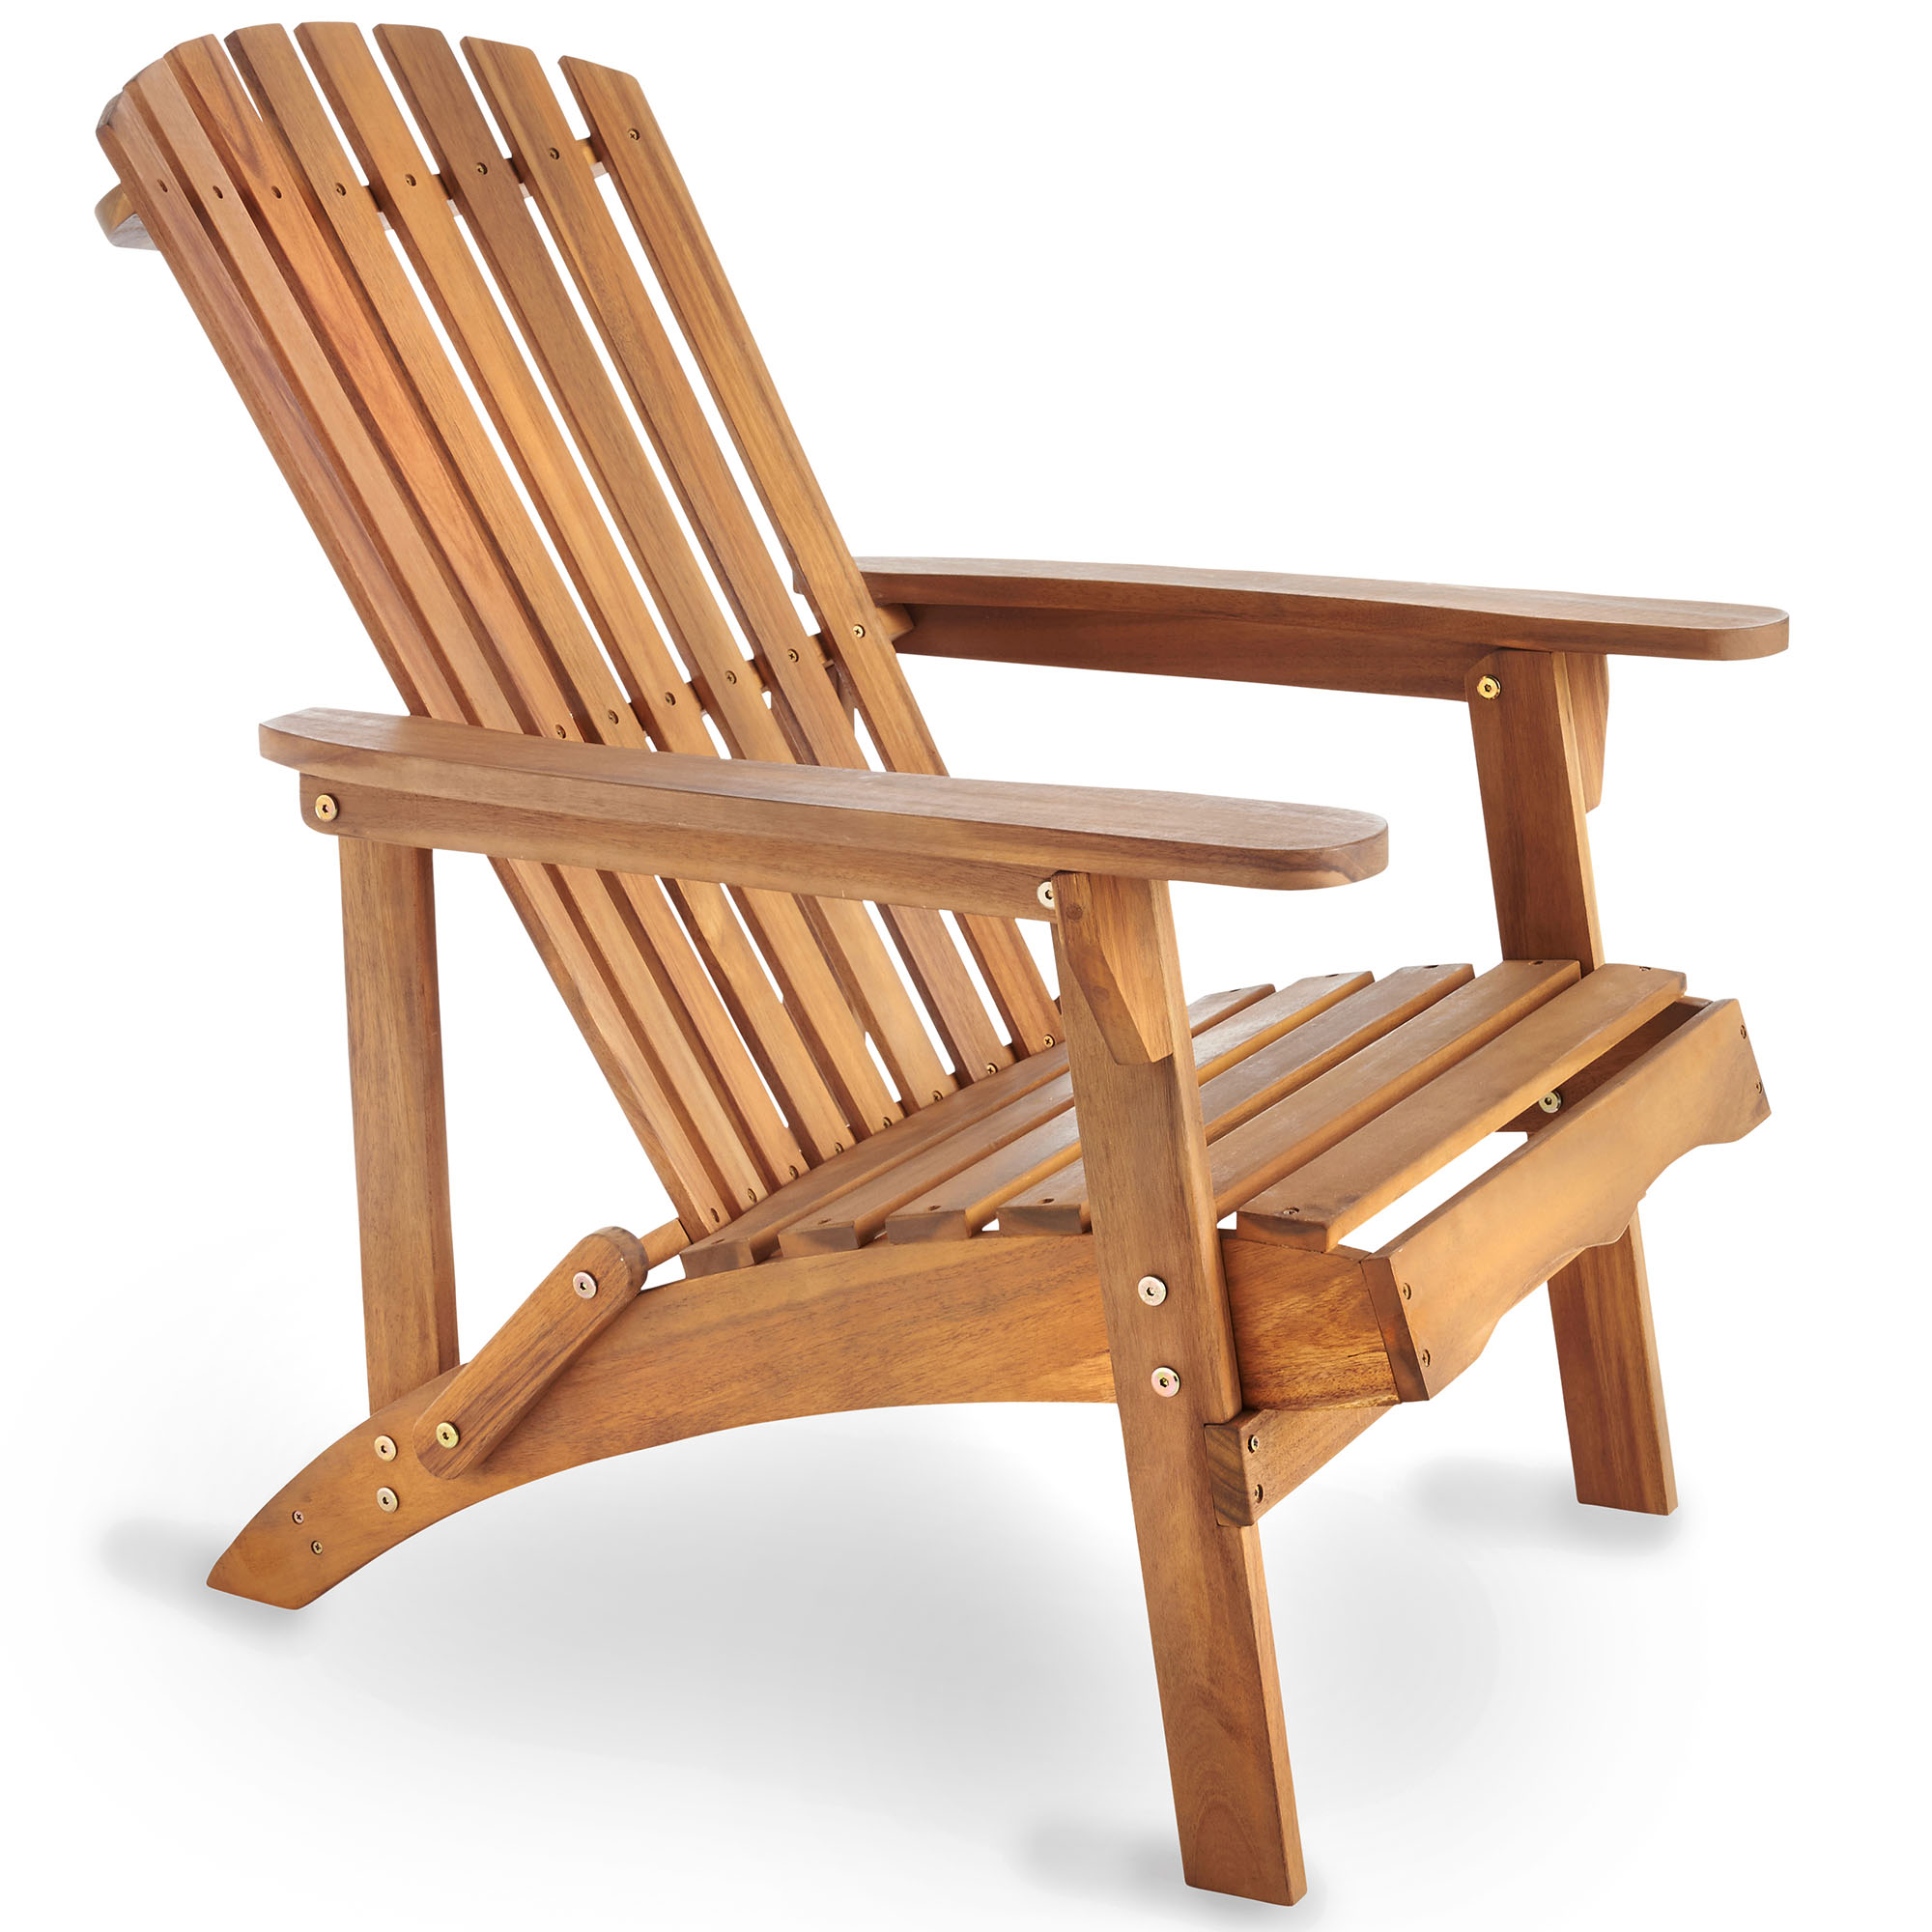 Outdoor Wooden Chairs Vonhaus Adirondack Chair Outdoor Garden Patio Pool Balcony